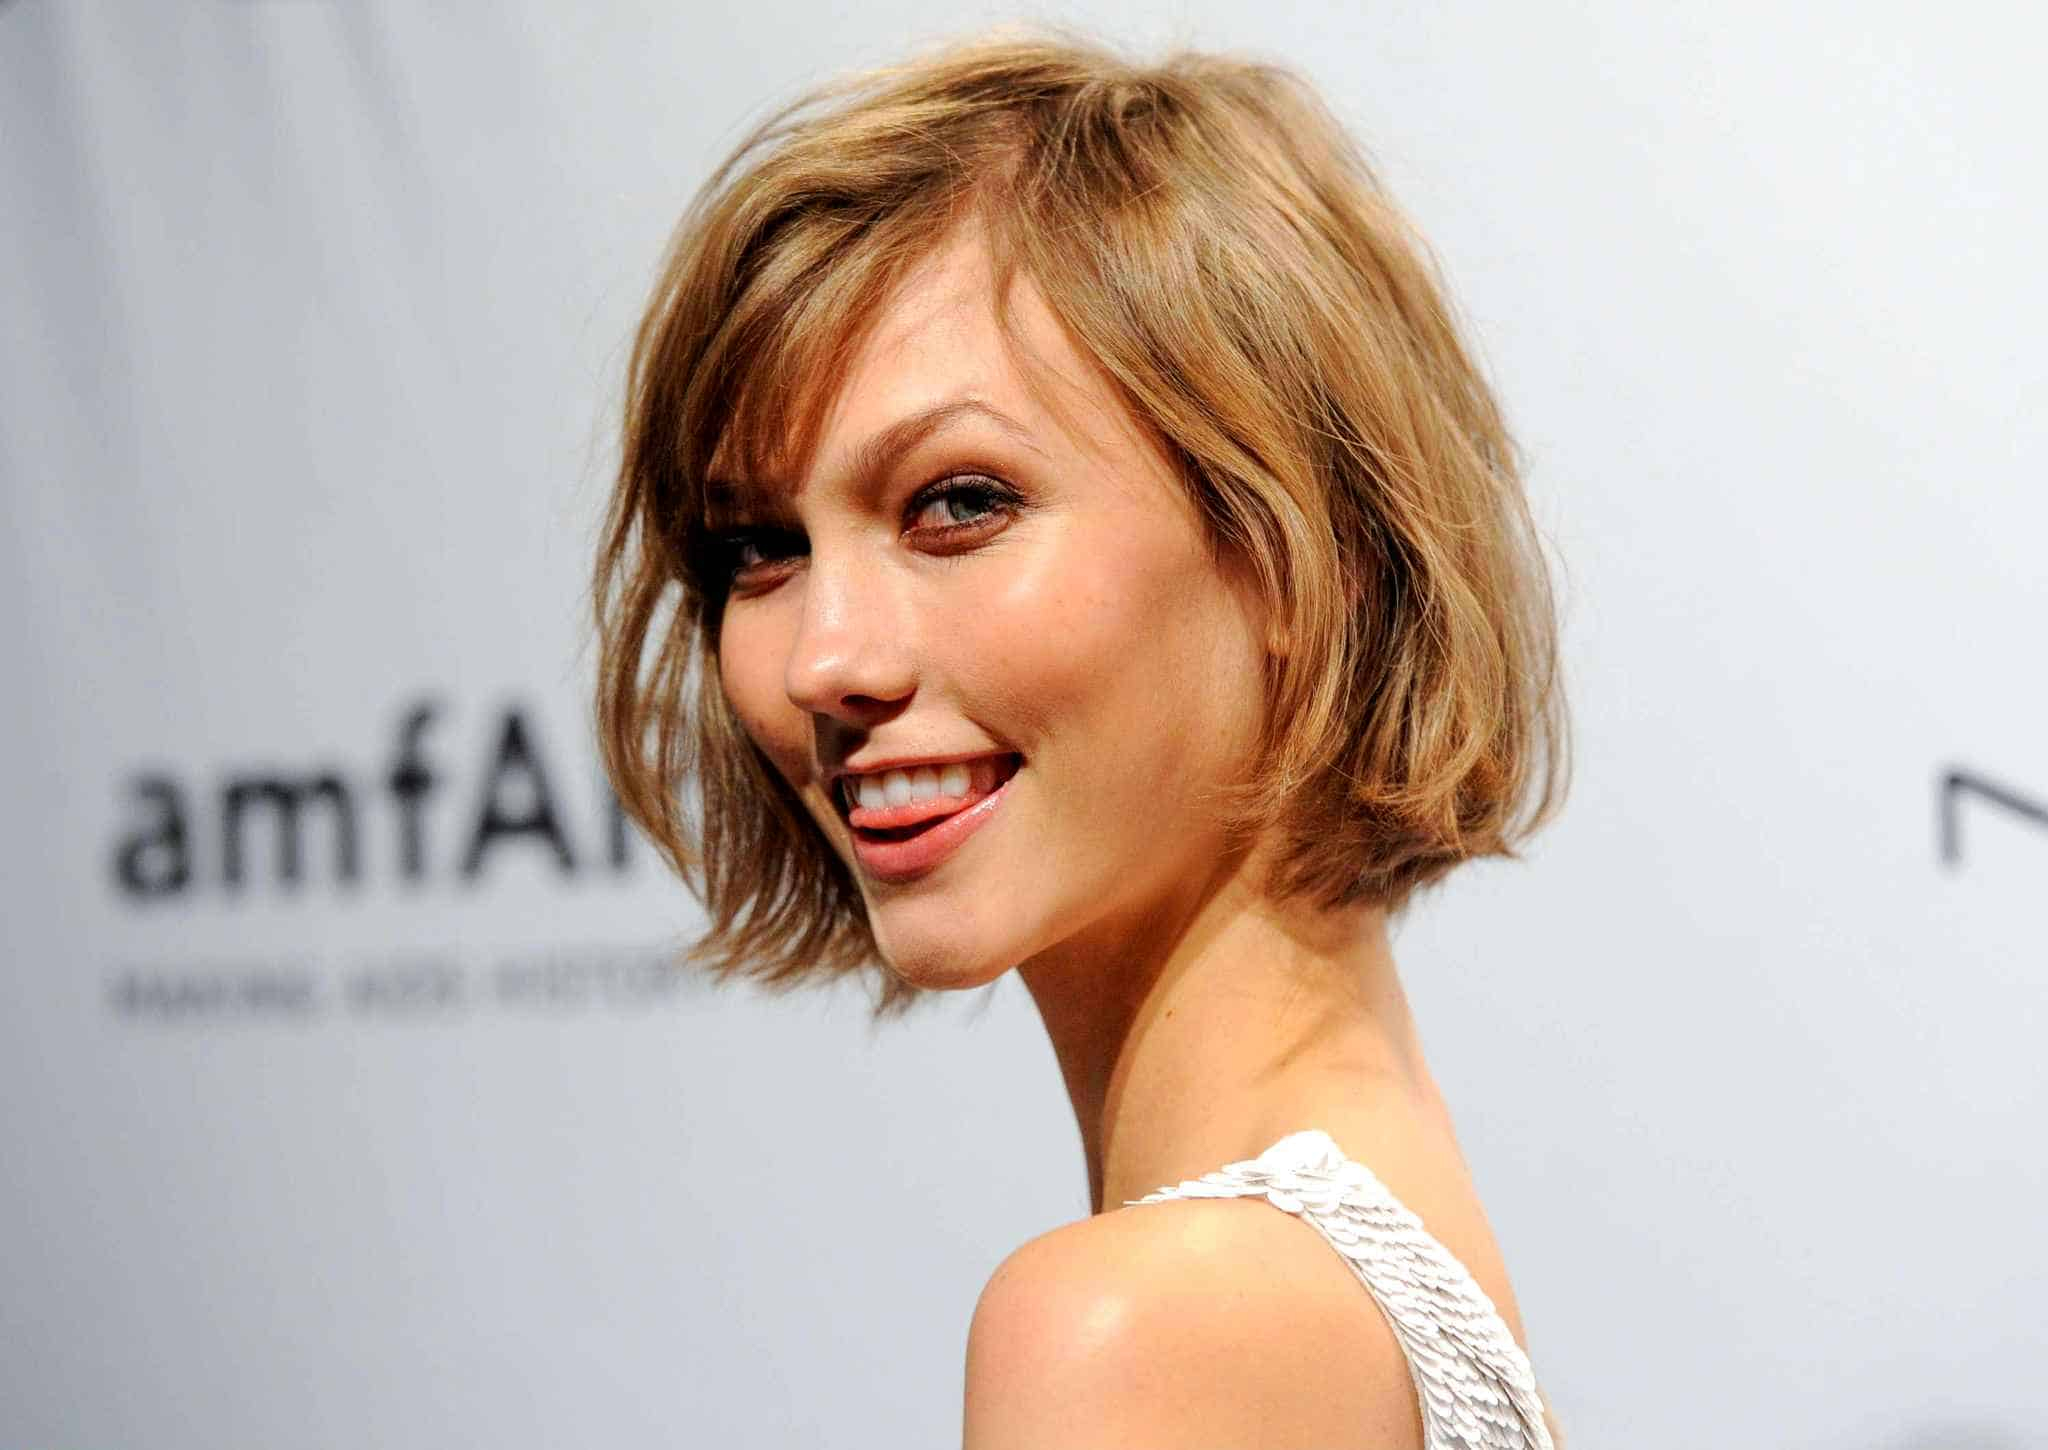 karlie-kloss-beauty-amfar-gala-2013